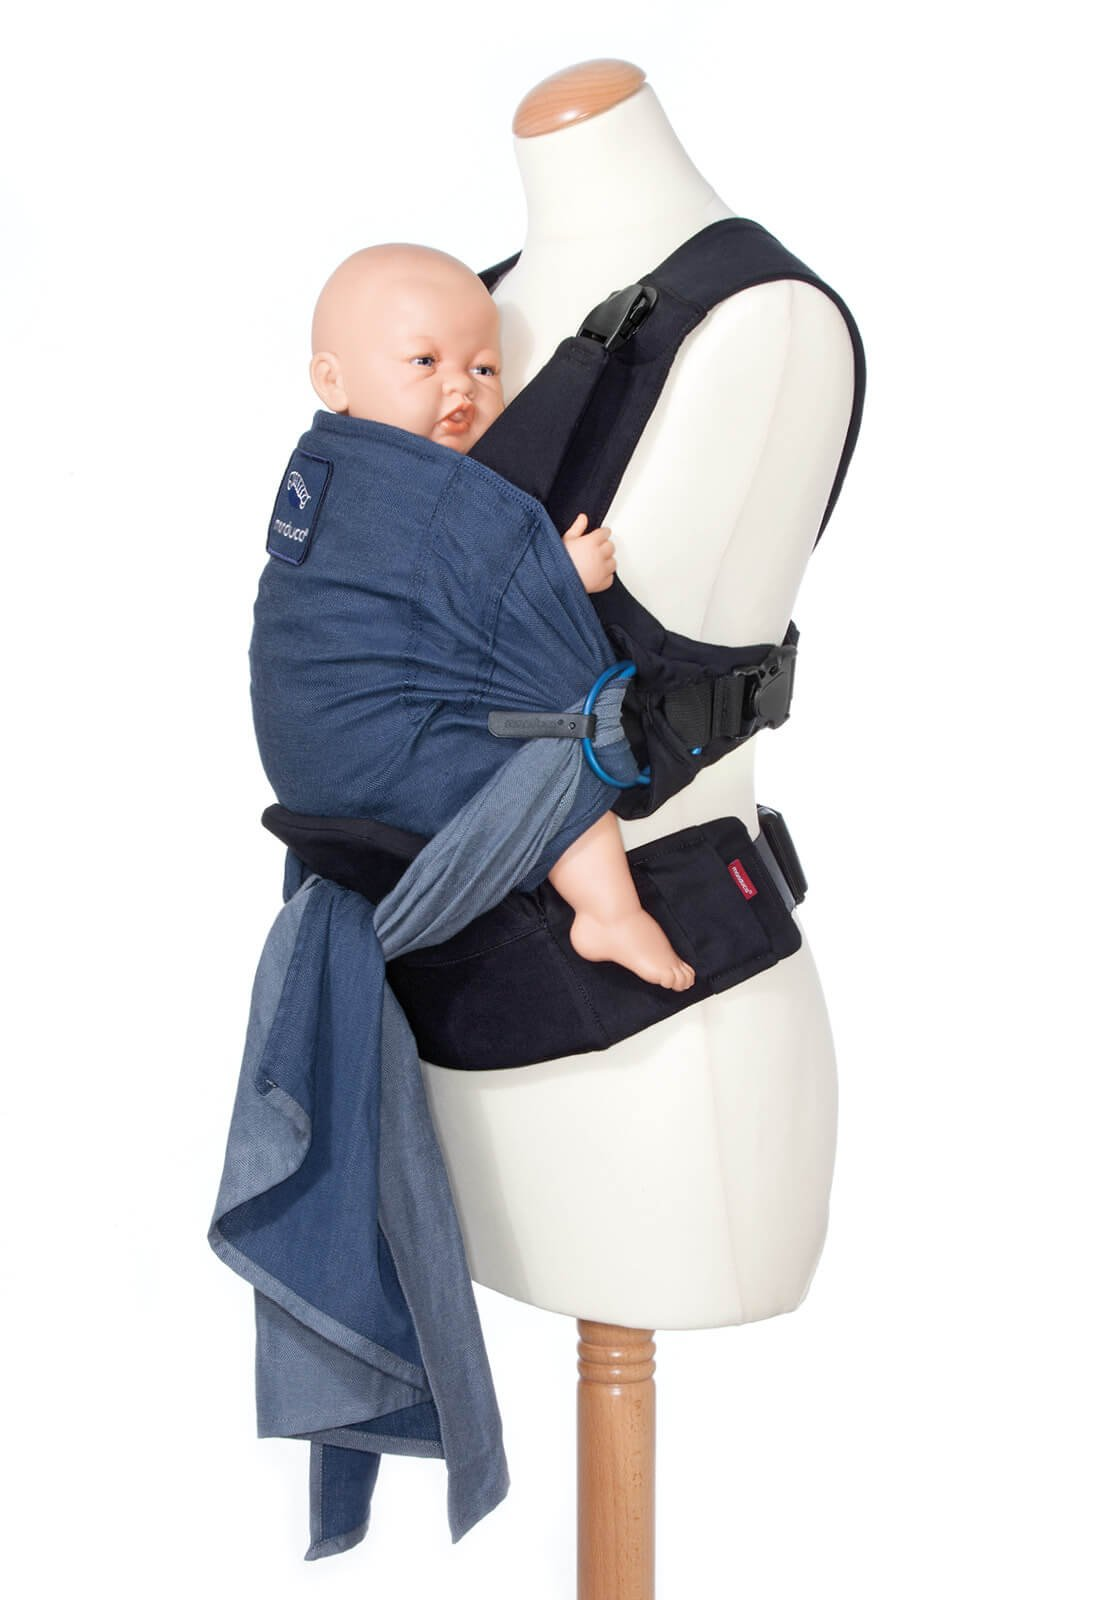 manduca Duo - Hybrid of Baby Carrier and Sling, Innovative Click &Tie System, Baby Slip-Through-Protection, Removable Hip Belt, Organic Cotton and Mesh, from Birth to 15kg (Blue) Manduca Optimized as front carrier, with slip-through protection (secure fit for your baby), supports the M position, for newborns from birth to infants up to 15 kg Especially popular with first-time parents who find it difficult to choose between a sling and a comfort carrier with buckles. Easy to use, illustrated instructions Detachable hip belt, which is only zipped on when needed (up to 140cm circumference without belt extension). Ideal for mothers with sensitive belly and after cesarean section, good weight distribution, comfortable on the shoulders. 6